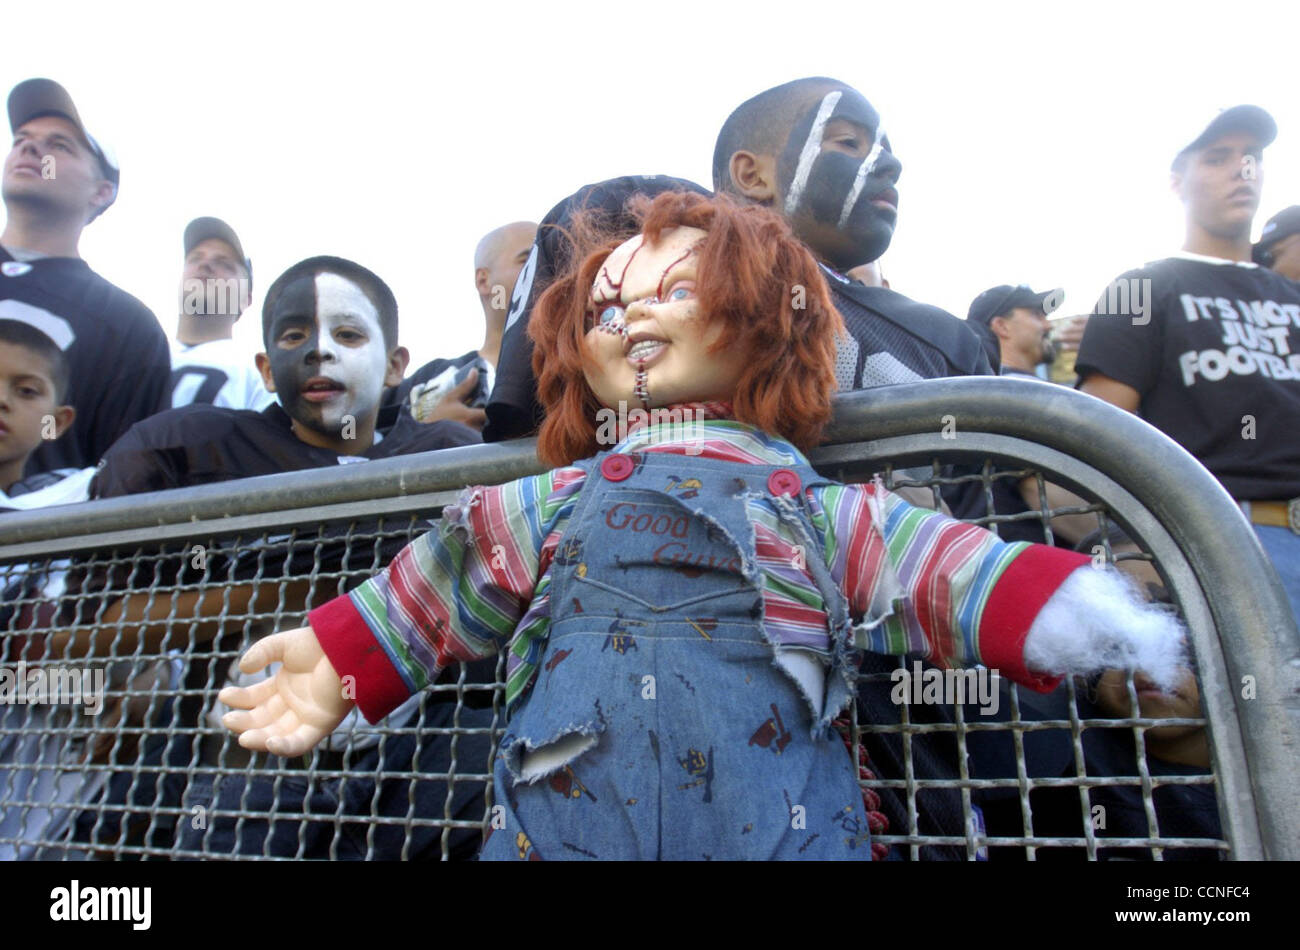 Raiders Fans Hang A Chucky Doll From The Stands Prior To Sundays Game Vs